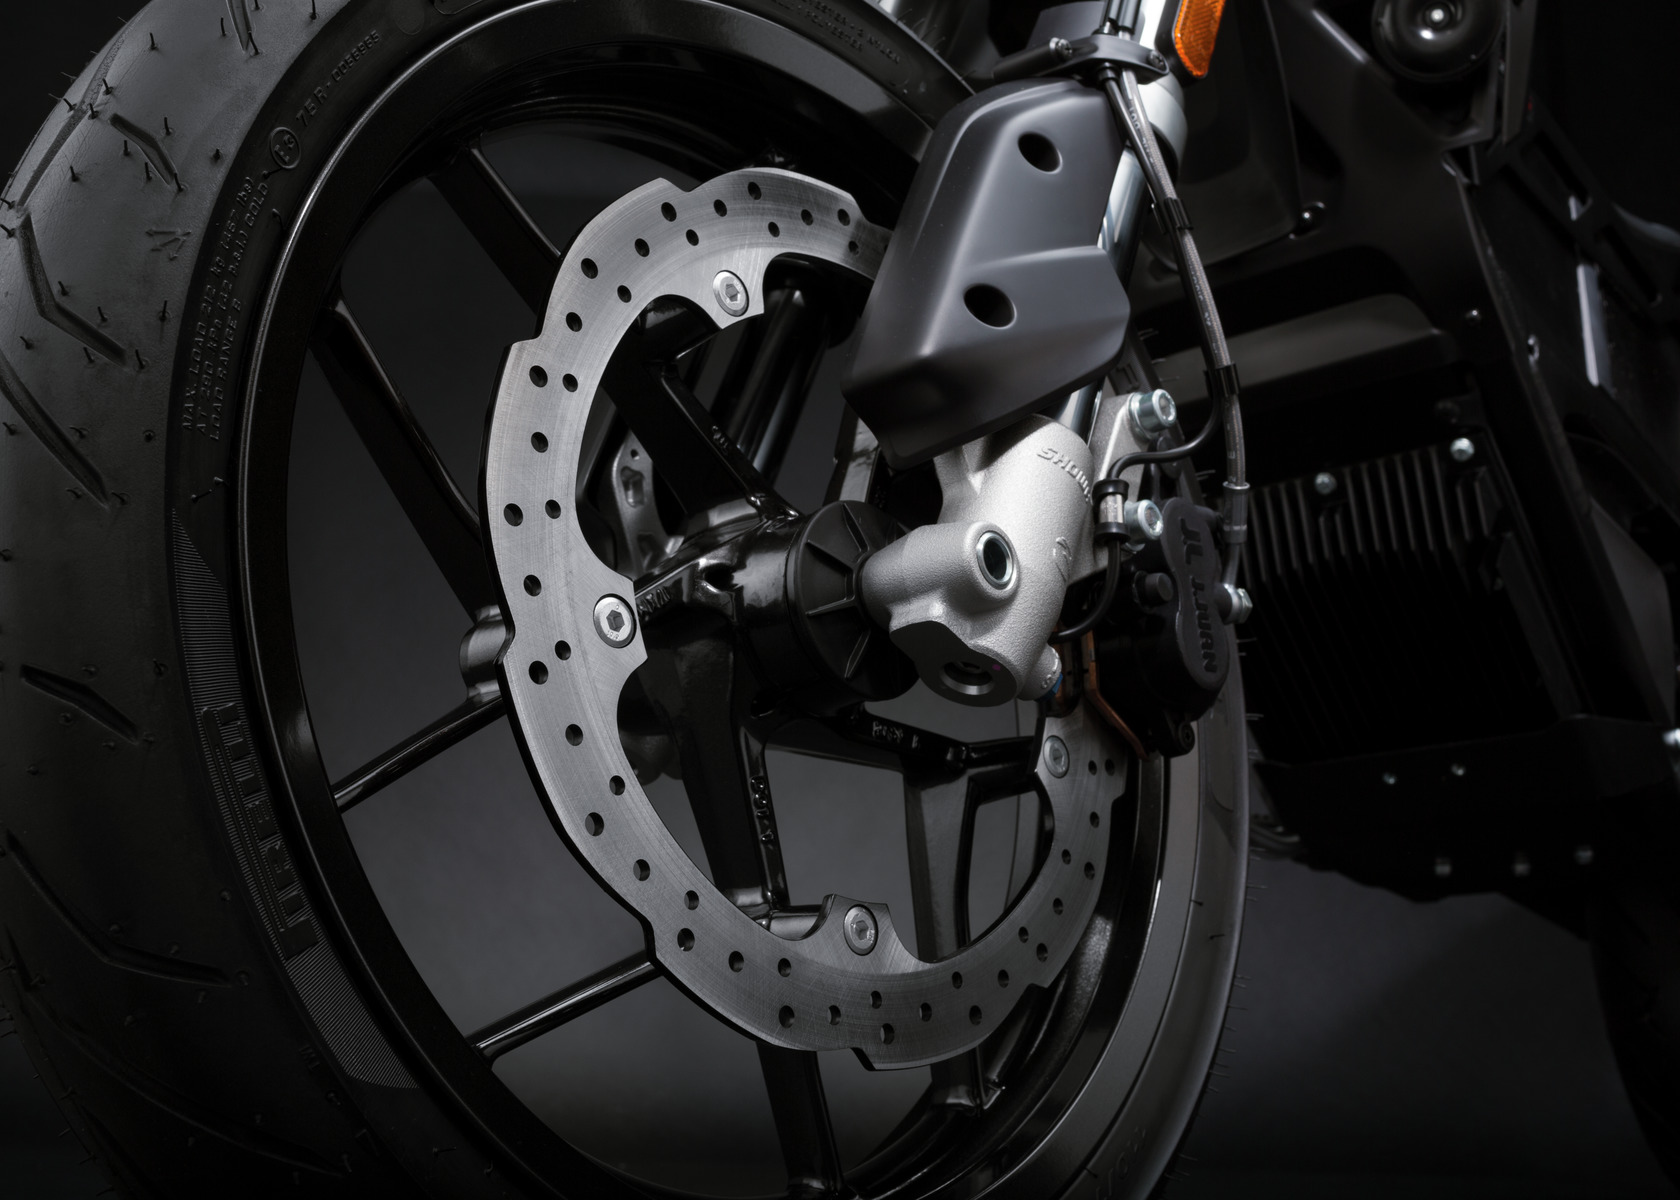 2016 Zero FXS Electric Motorcycle: Front Brake